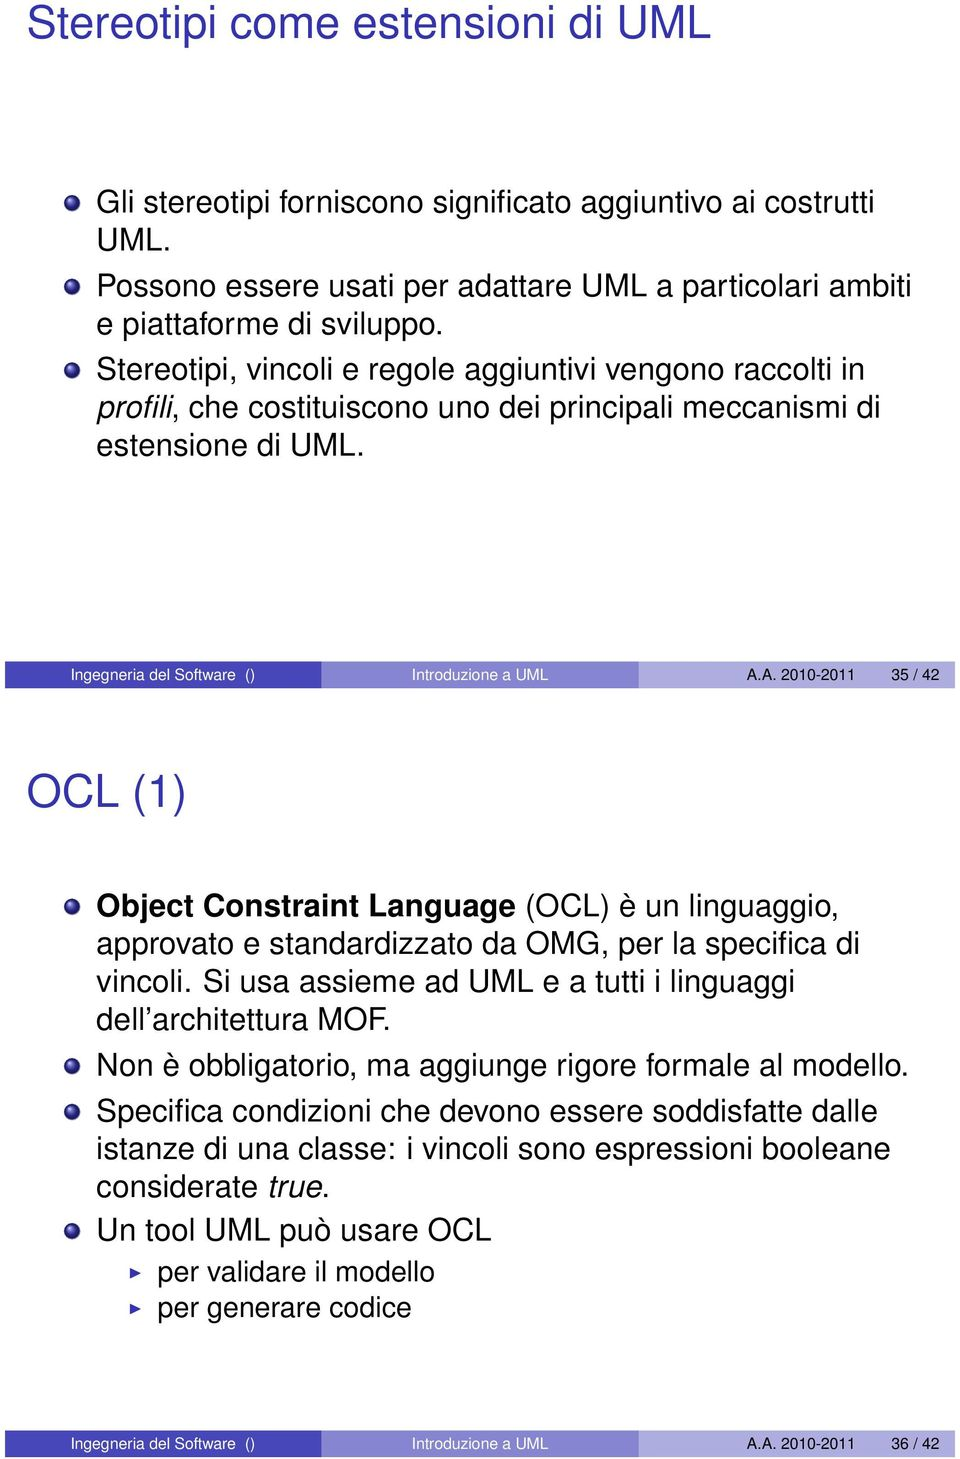 A. 2010-2011 35 / 42 OCL (1) Object Constraint Language (OCL) è un linguaggio, approvato e standardizzato da OMG, per la specifica di vincoli.